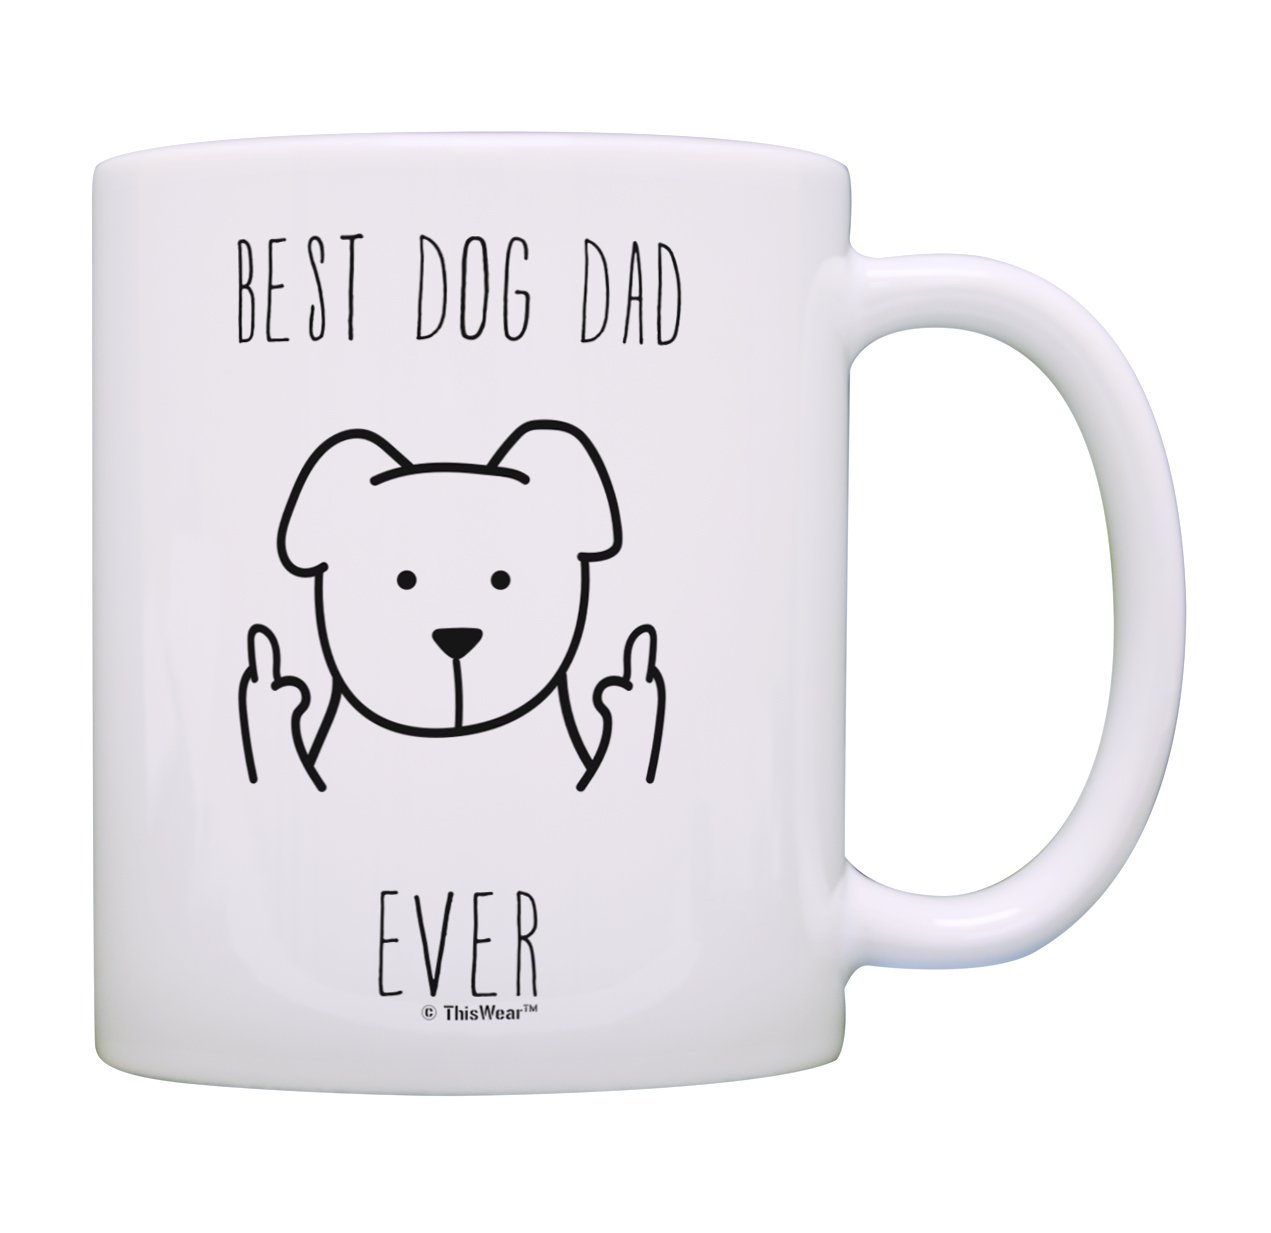 Best Dog Dad Coffee Mug Best Dog Dad Ever Mug Fathers Day Gifts from Dog Related Gifts Dog Gift for Men Rescue Dog Dad Gift Coffee Mug Tea Cup Dog Dad